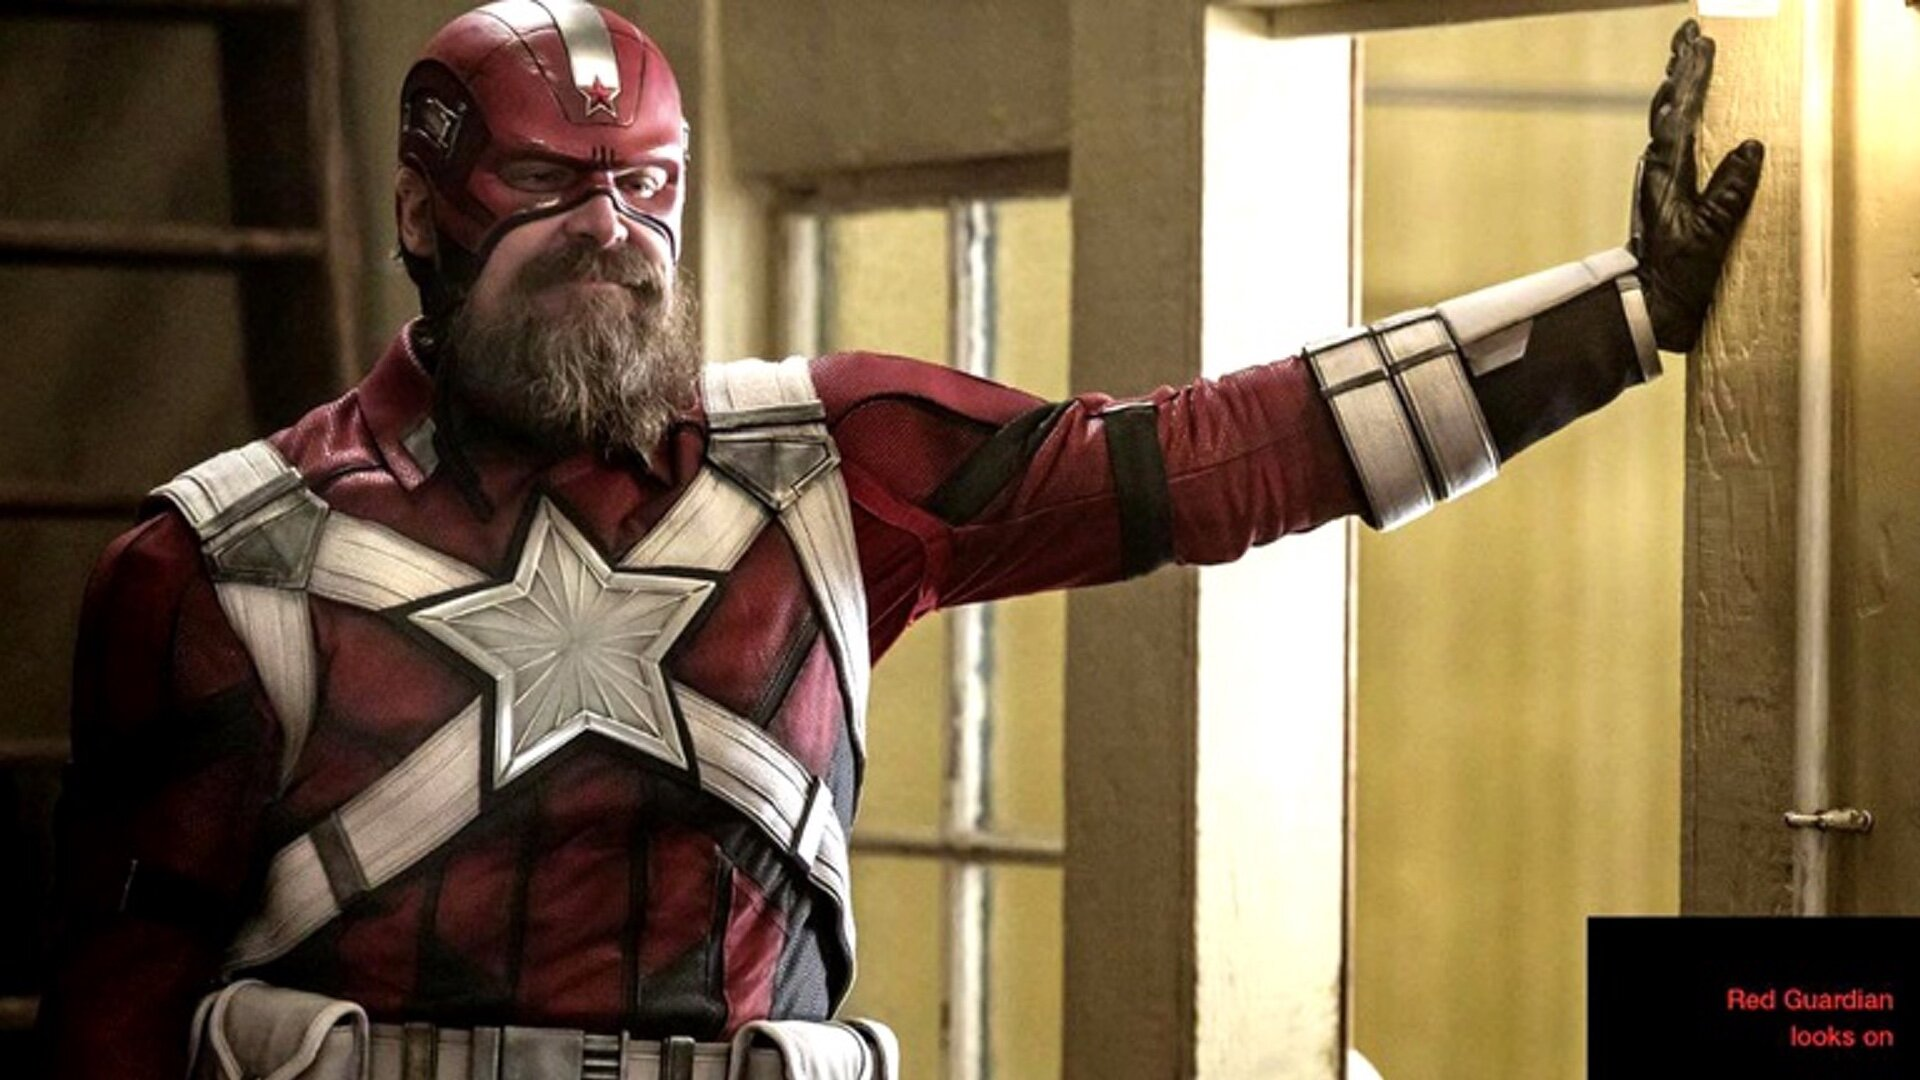 New Photo of David Harbour as Red Guardian in Marvel's BLACK WIDOW — GeekTyrant